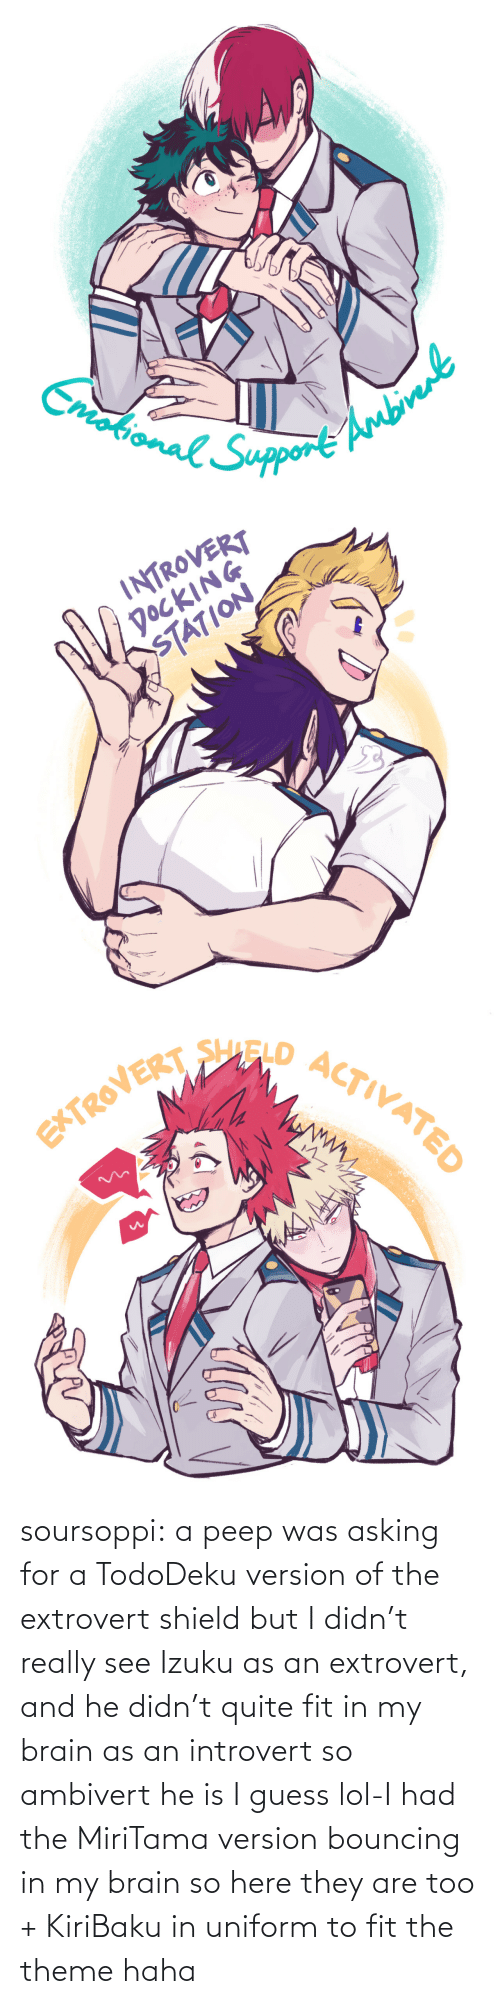 Tododeku: soursoppi:  a peep was asking for a TodoDeku version of the extrovert shield but I didn't really see Izuku as an extrovert, and he didn't quite fit in my brain as an introvert so ambivert he is I guess lol-I had the MiriTama version bouncing in my brain so here they are too + KiriBaku in uniform to fit the theme haha